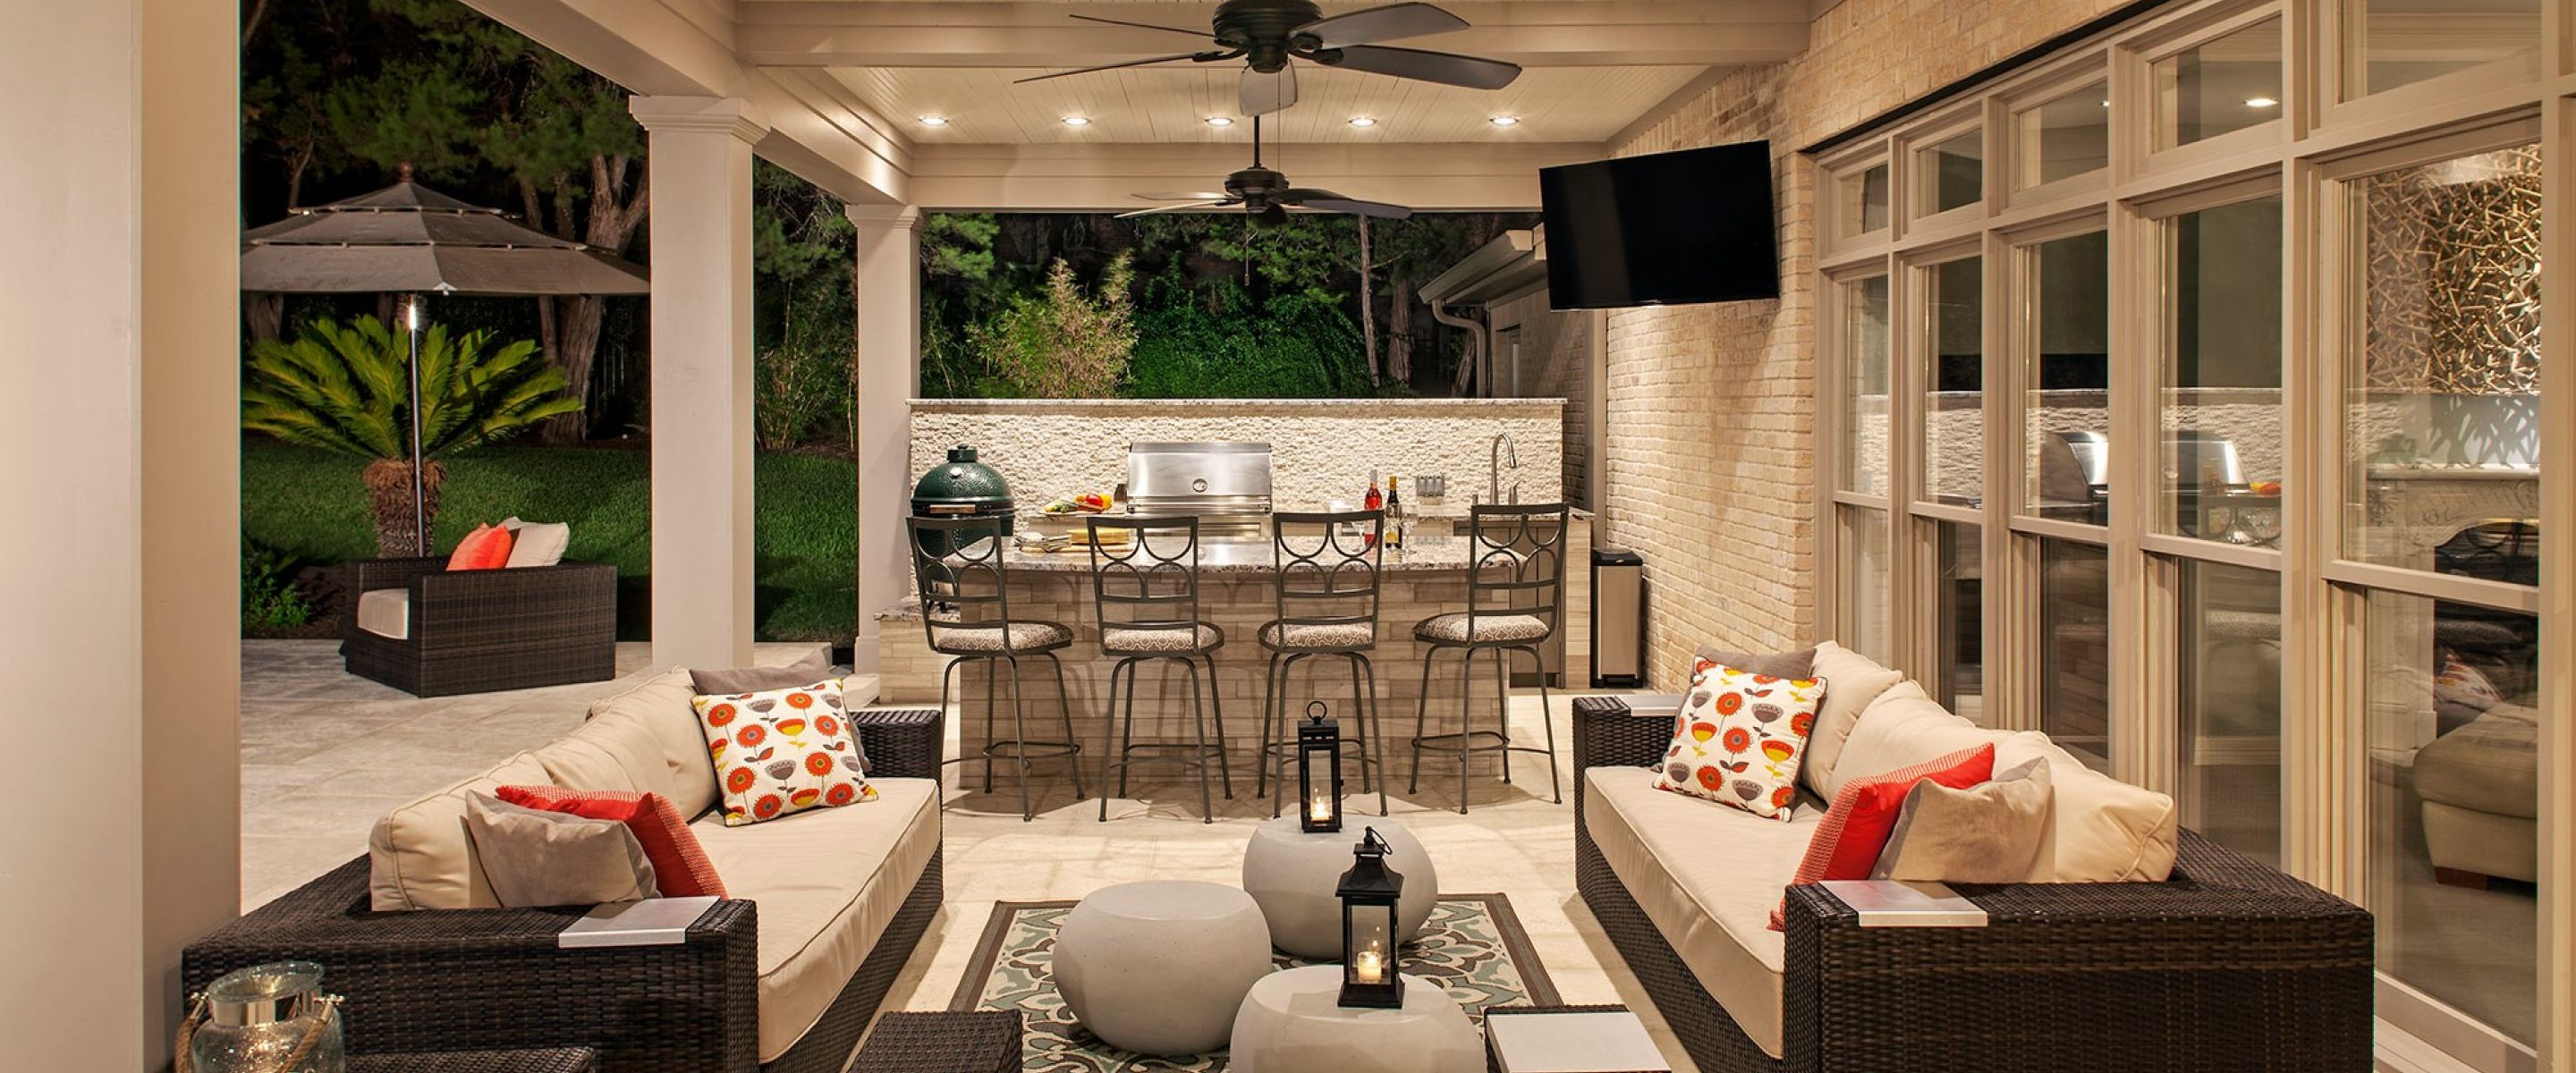 Modern Backyard Outdoor Kitchen